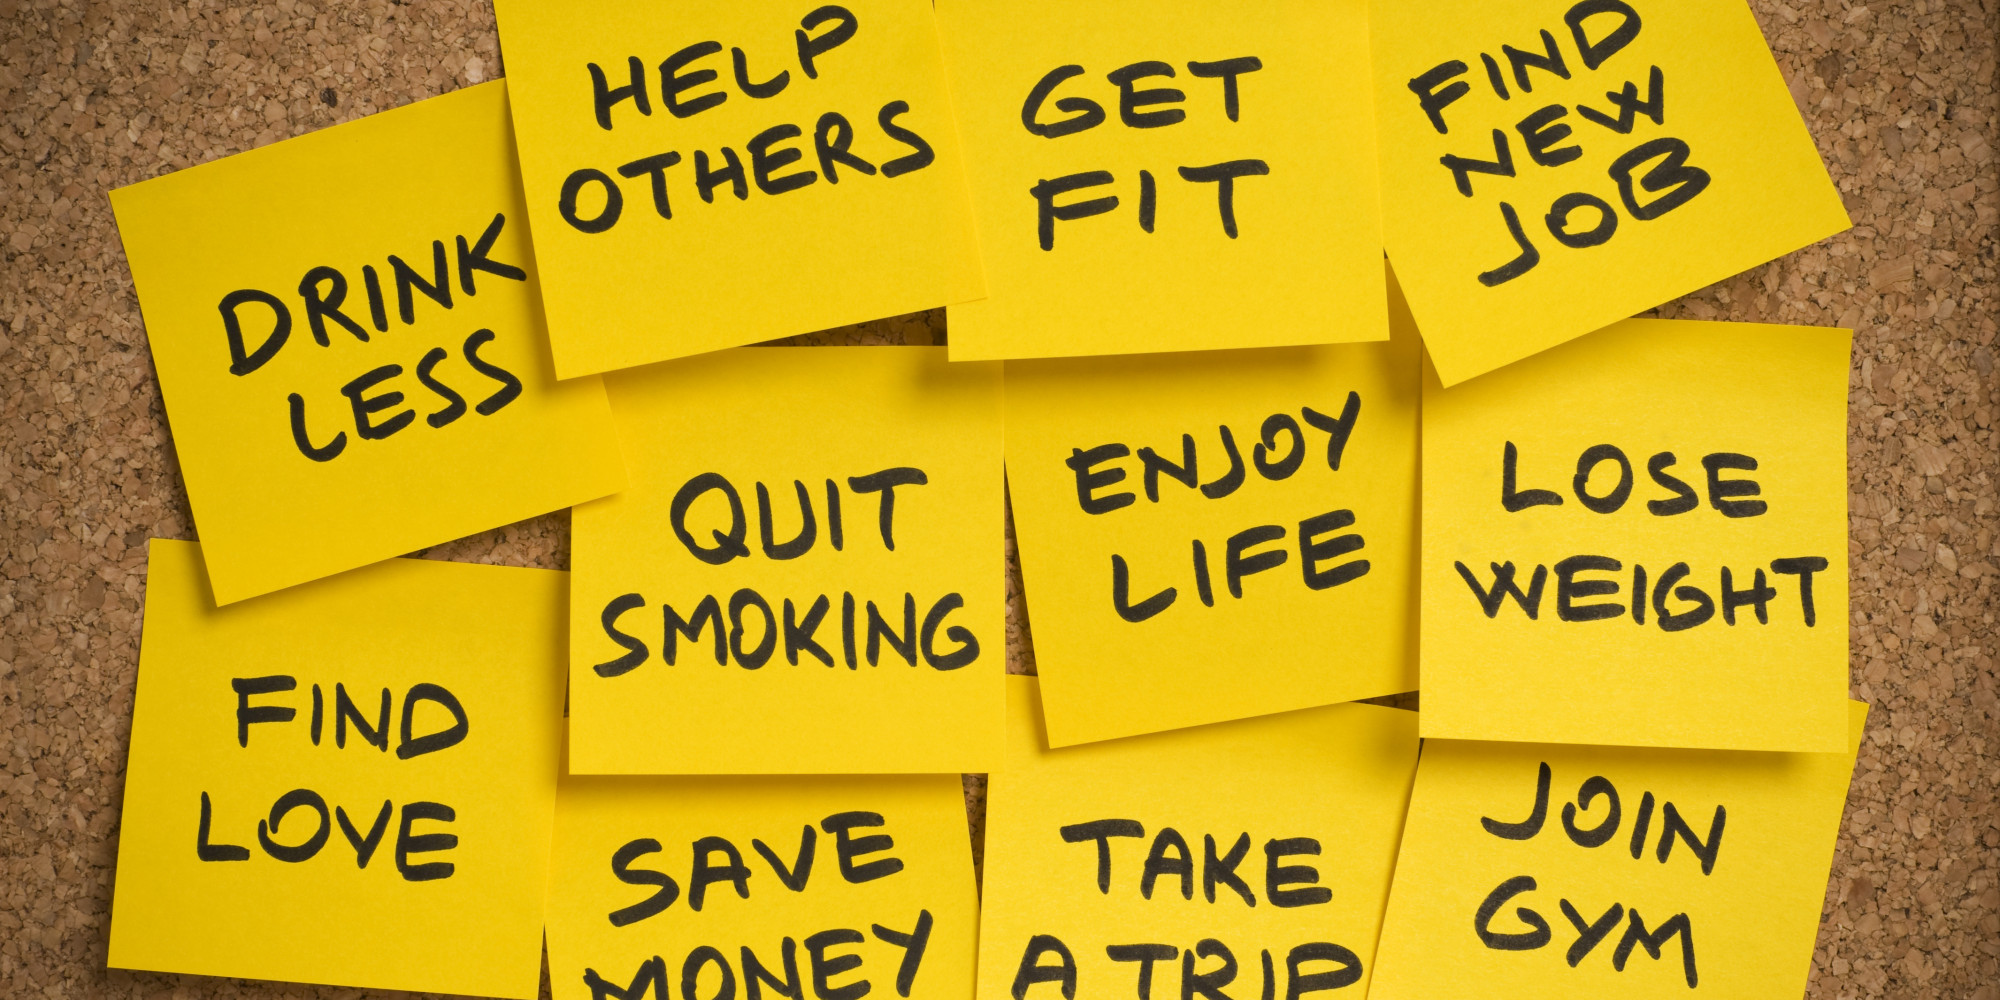 Why Do We Set New Year's Resolutions in January? | HuffPost